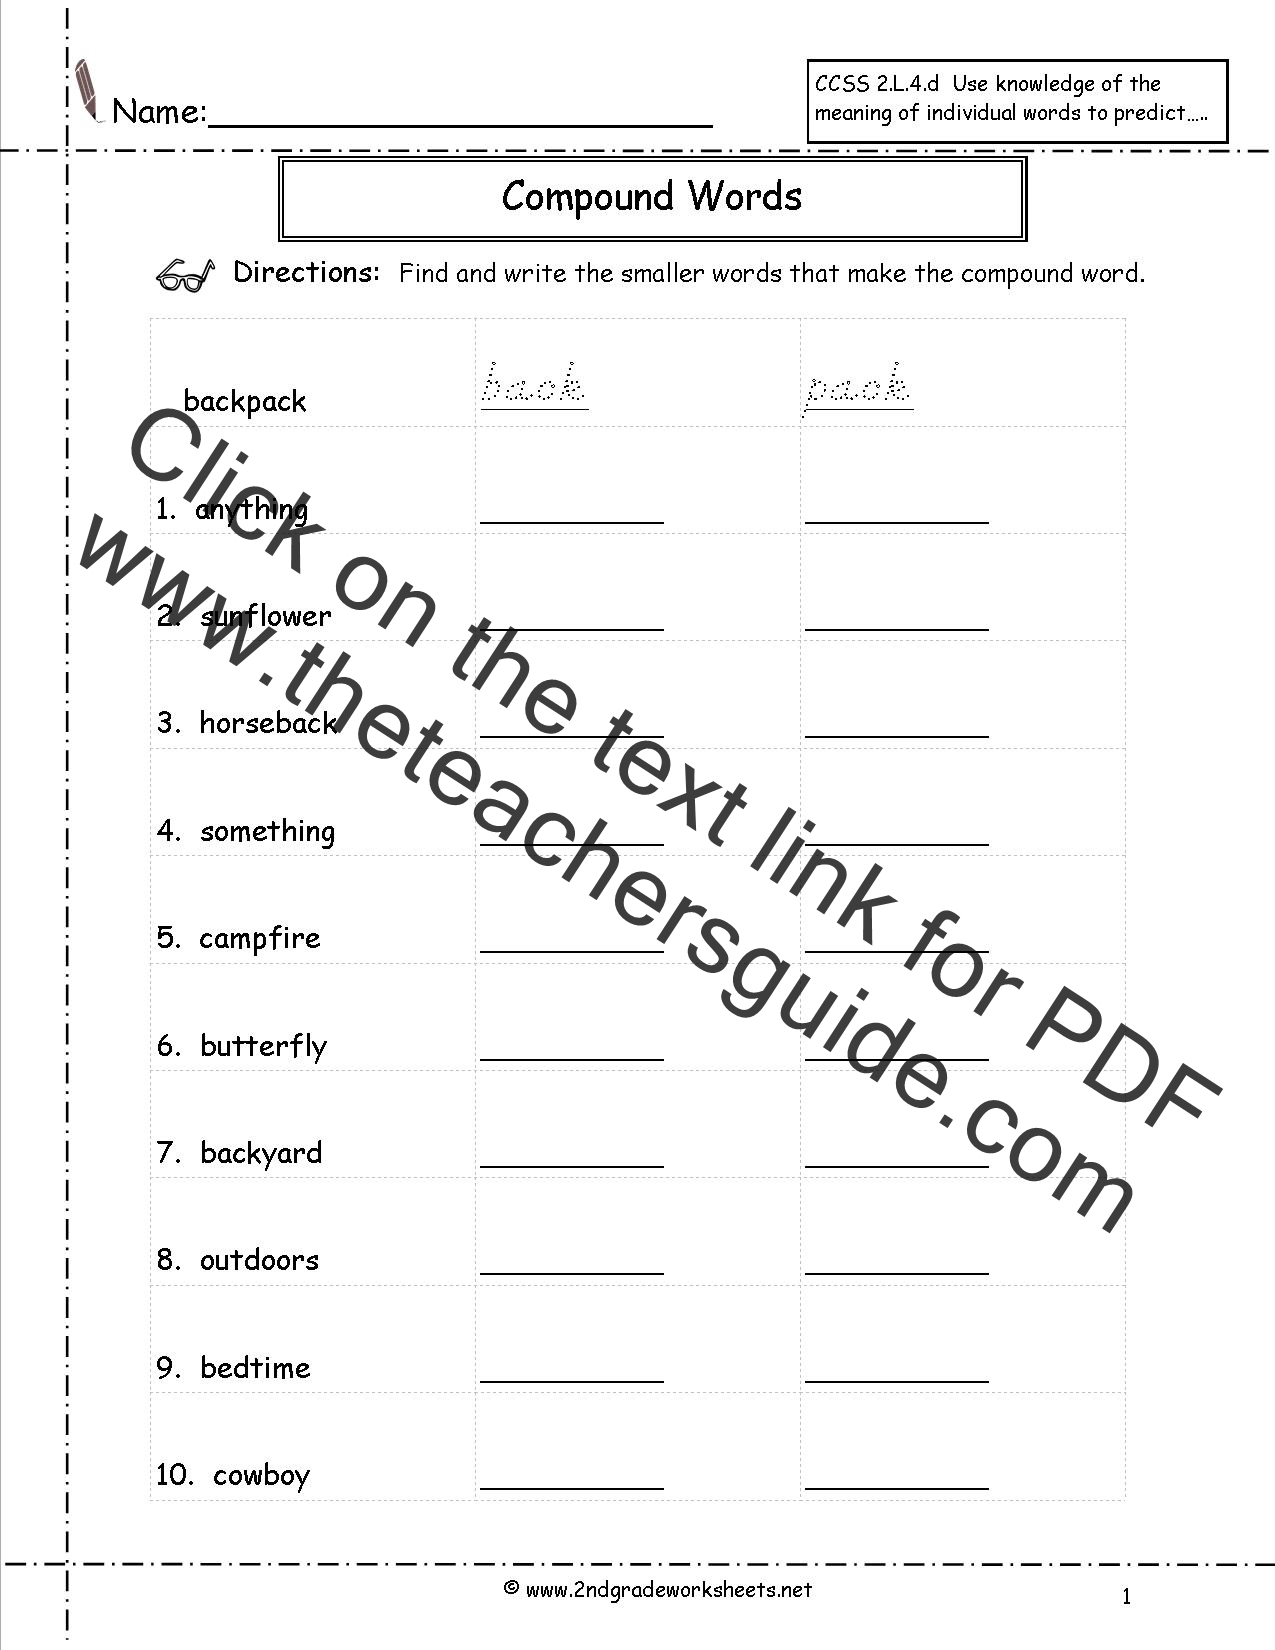 Printables Free Language Worksheets free languagegrammar worksheets and printouts compound words worksheets